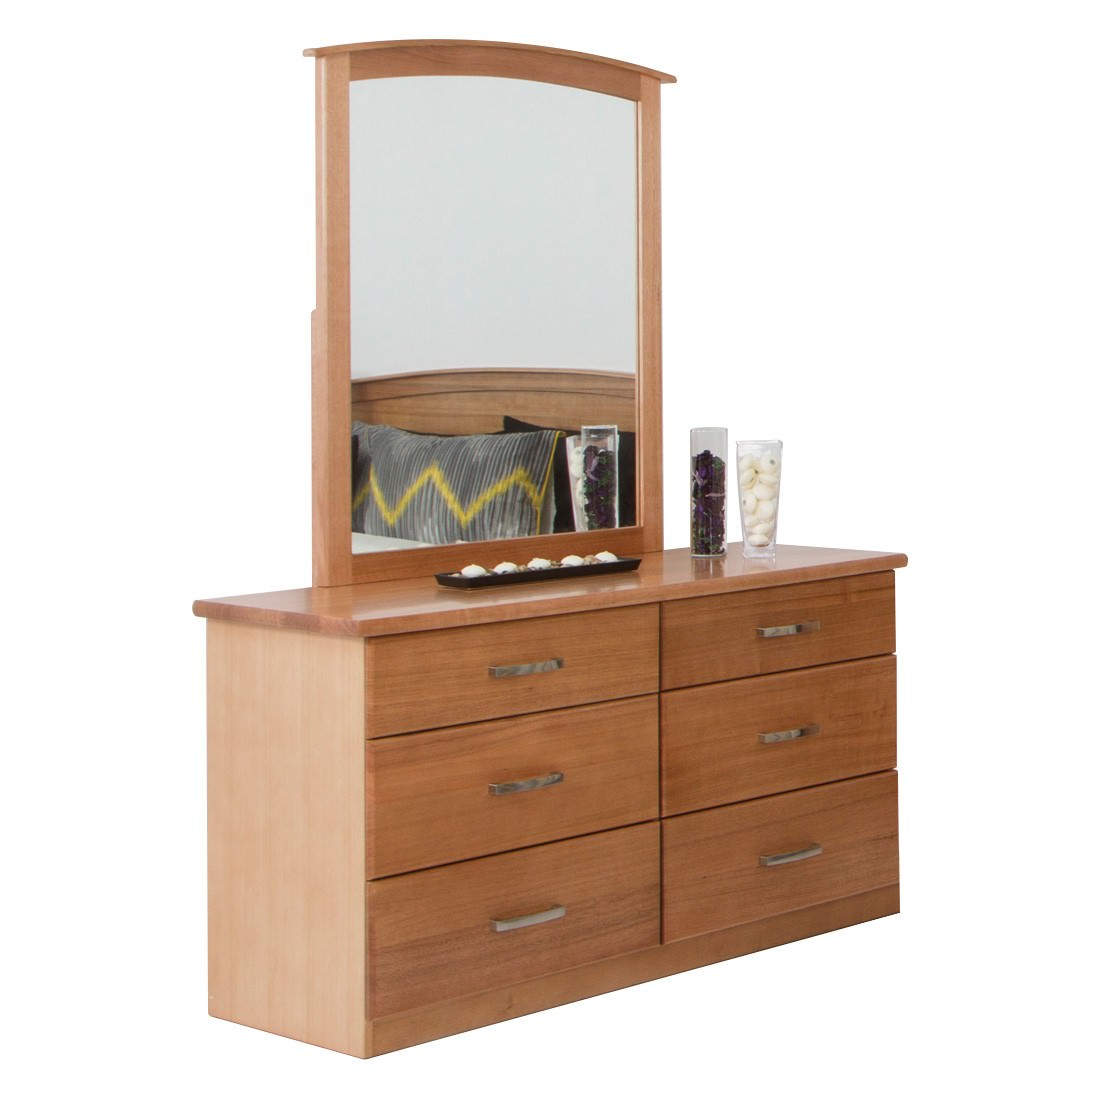 Hampton Tasmanian Oak Timber 6 Drawer Dresser with Mirror